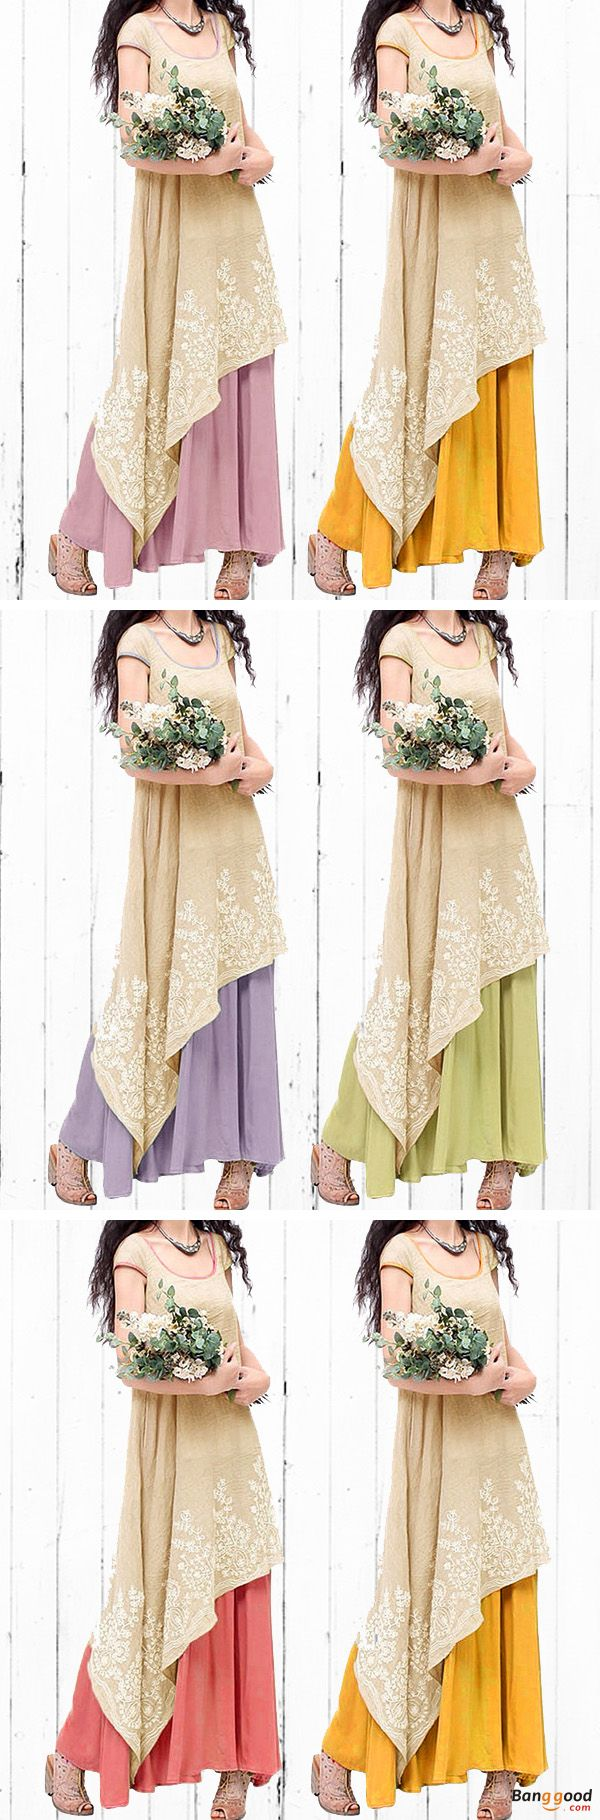 US$29.99+Free shipping. Size(US): S~5XL. Material: Cotton. Home or out, love this vintage and casual dress. Women Dresses, Long Dresses, Dresses Casual, Dresses for Teens, Summer Dresses, Summer Outfits, Retro Fashion.